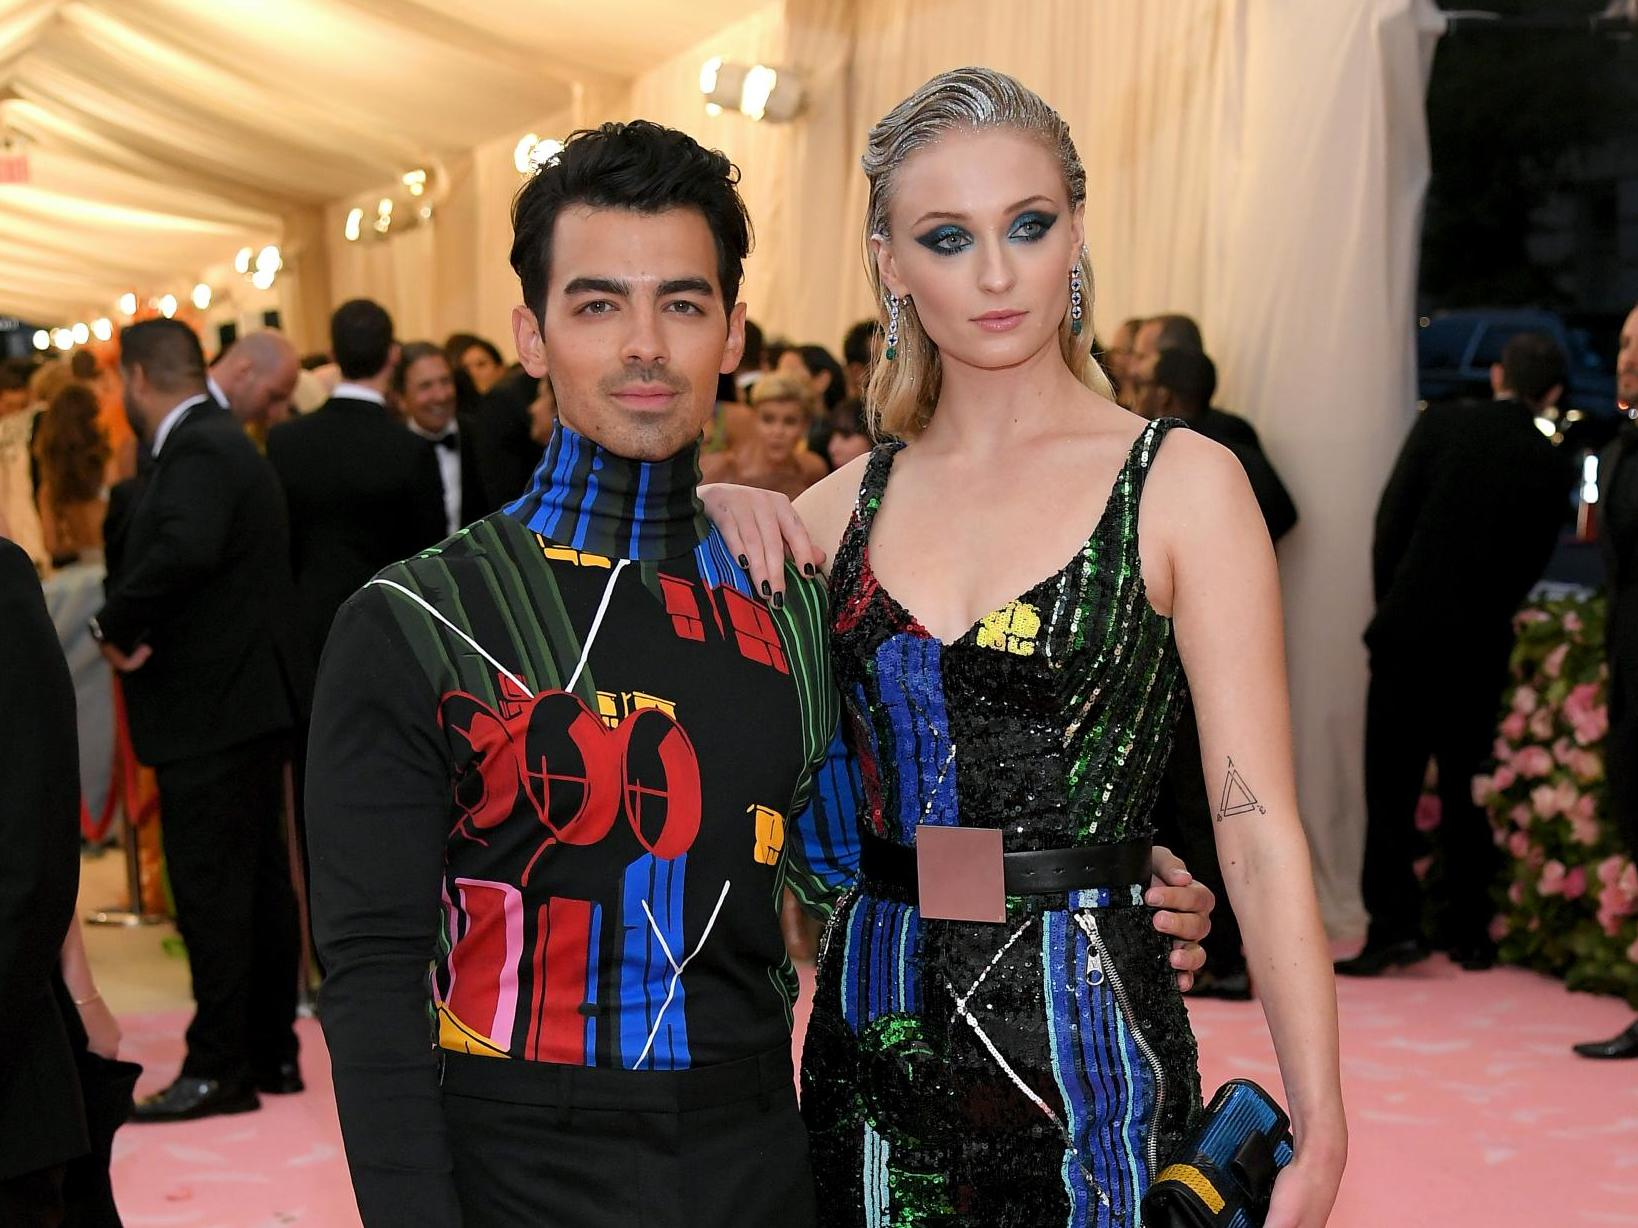 Joe Jonas and Sophie Turner urge fans to wear masks in first photo together since birth of their daughter